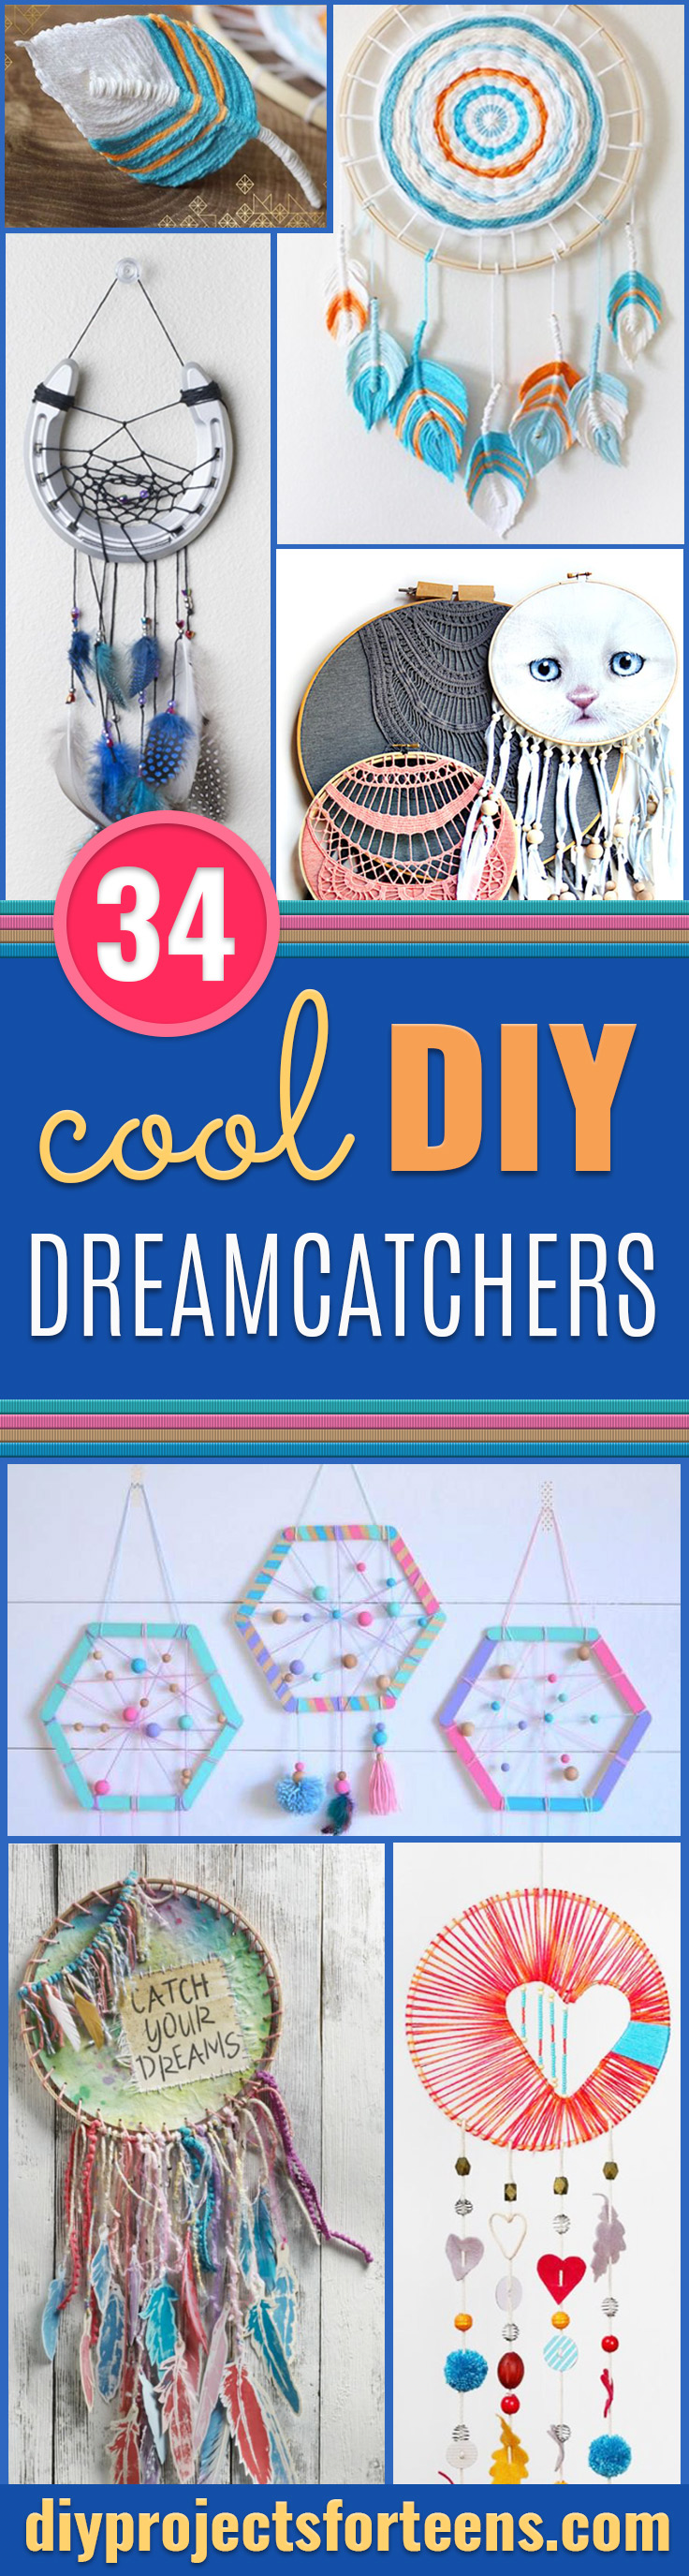 DIY Dream Catchers - How to Make a Dreamcatcher Step by Step Tutorial - Easy Ideas for Dream Catcher for Kids Room - Make a Mobile, Moon Designs, Pattern Ideas, Boho Dreamcatcher With Sticks, Cool Wall Hangings for Teen Rooms - Cheap Home Decor Ideas on A Budget #diyideas #teencrafts #dreamcatchers